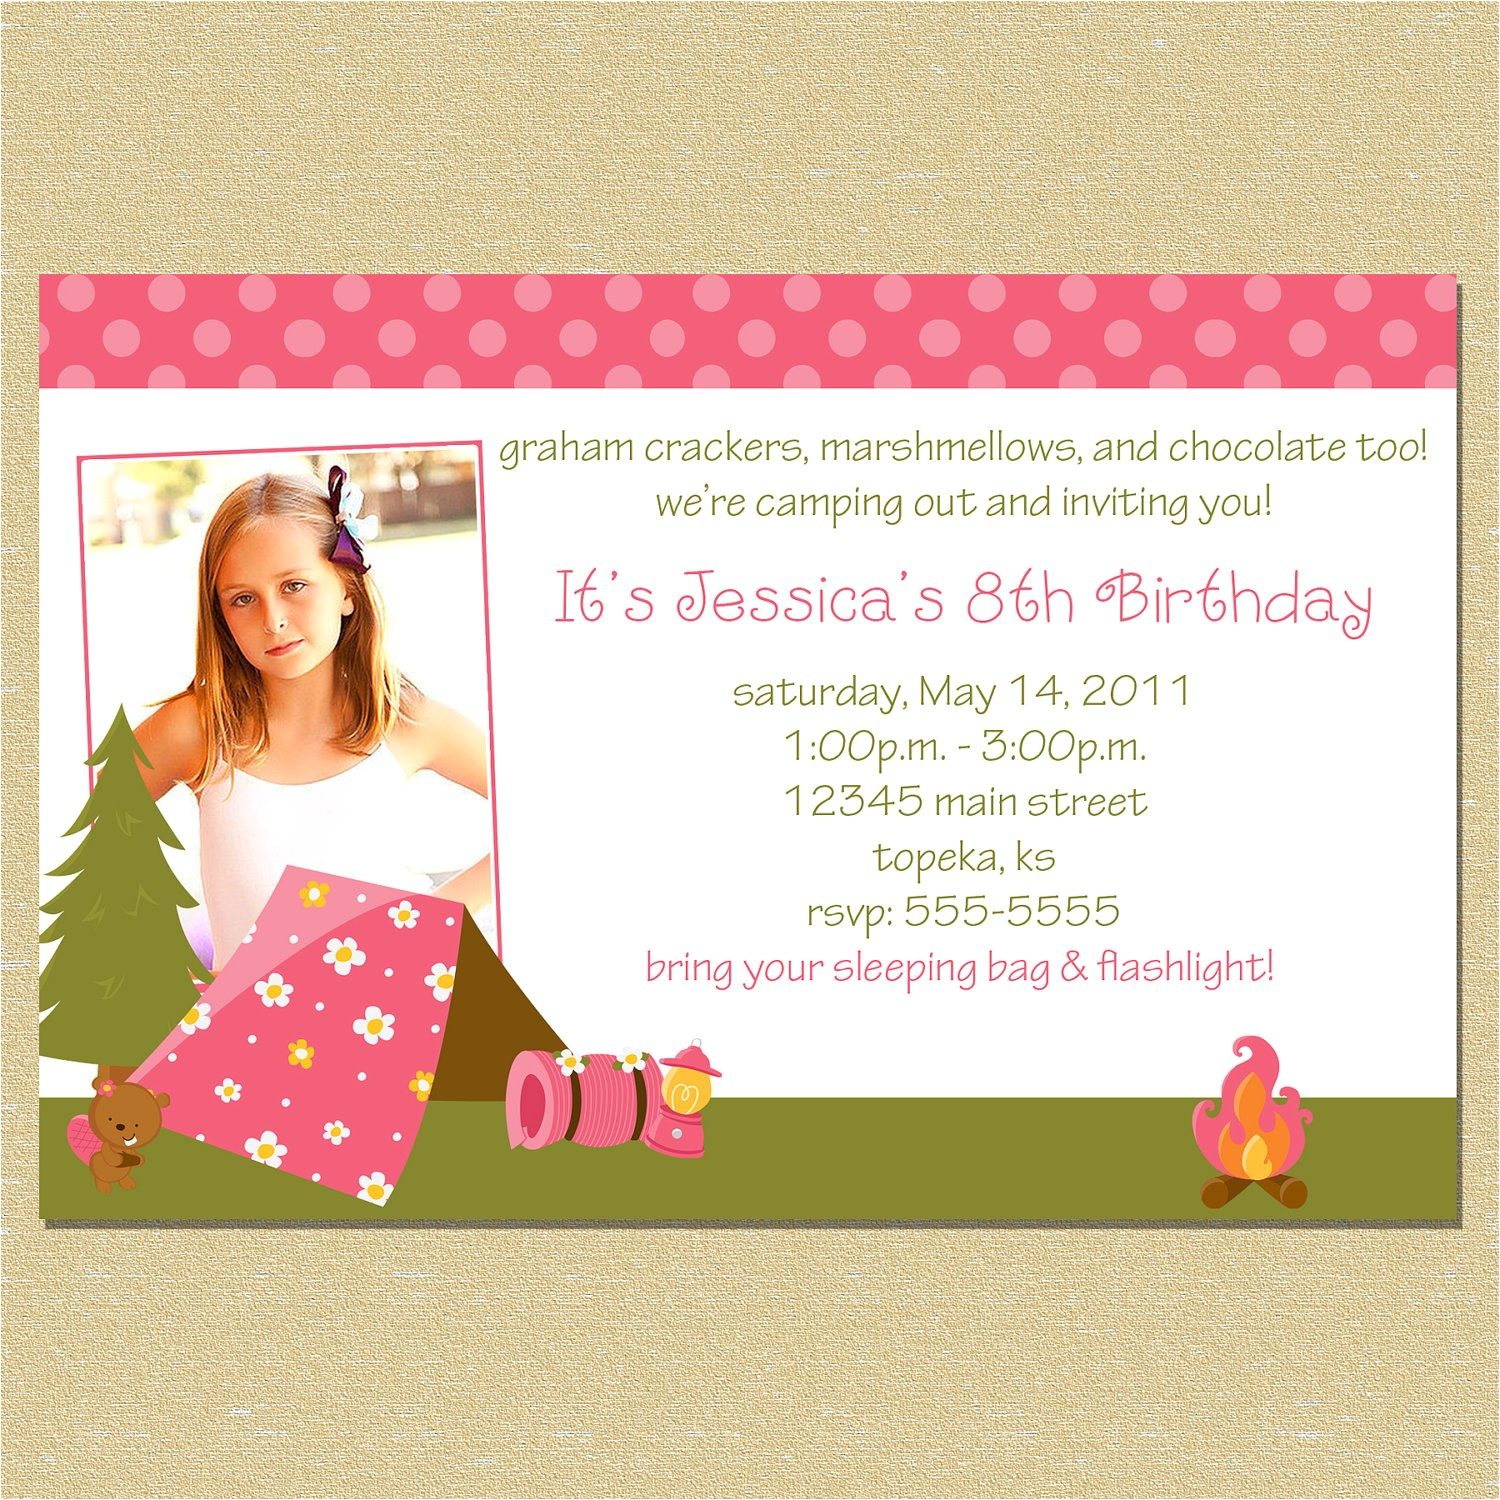 Walgreens Print Birthday Invites Walgreens Photo Birthday Invitations Invitation Librarry